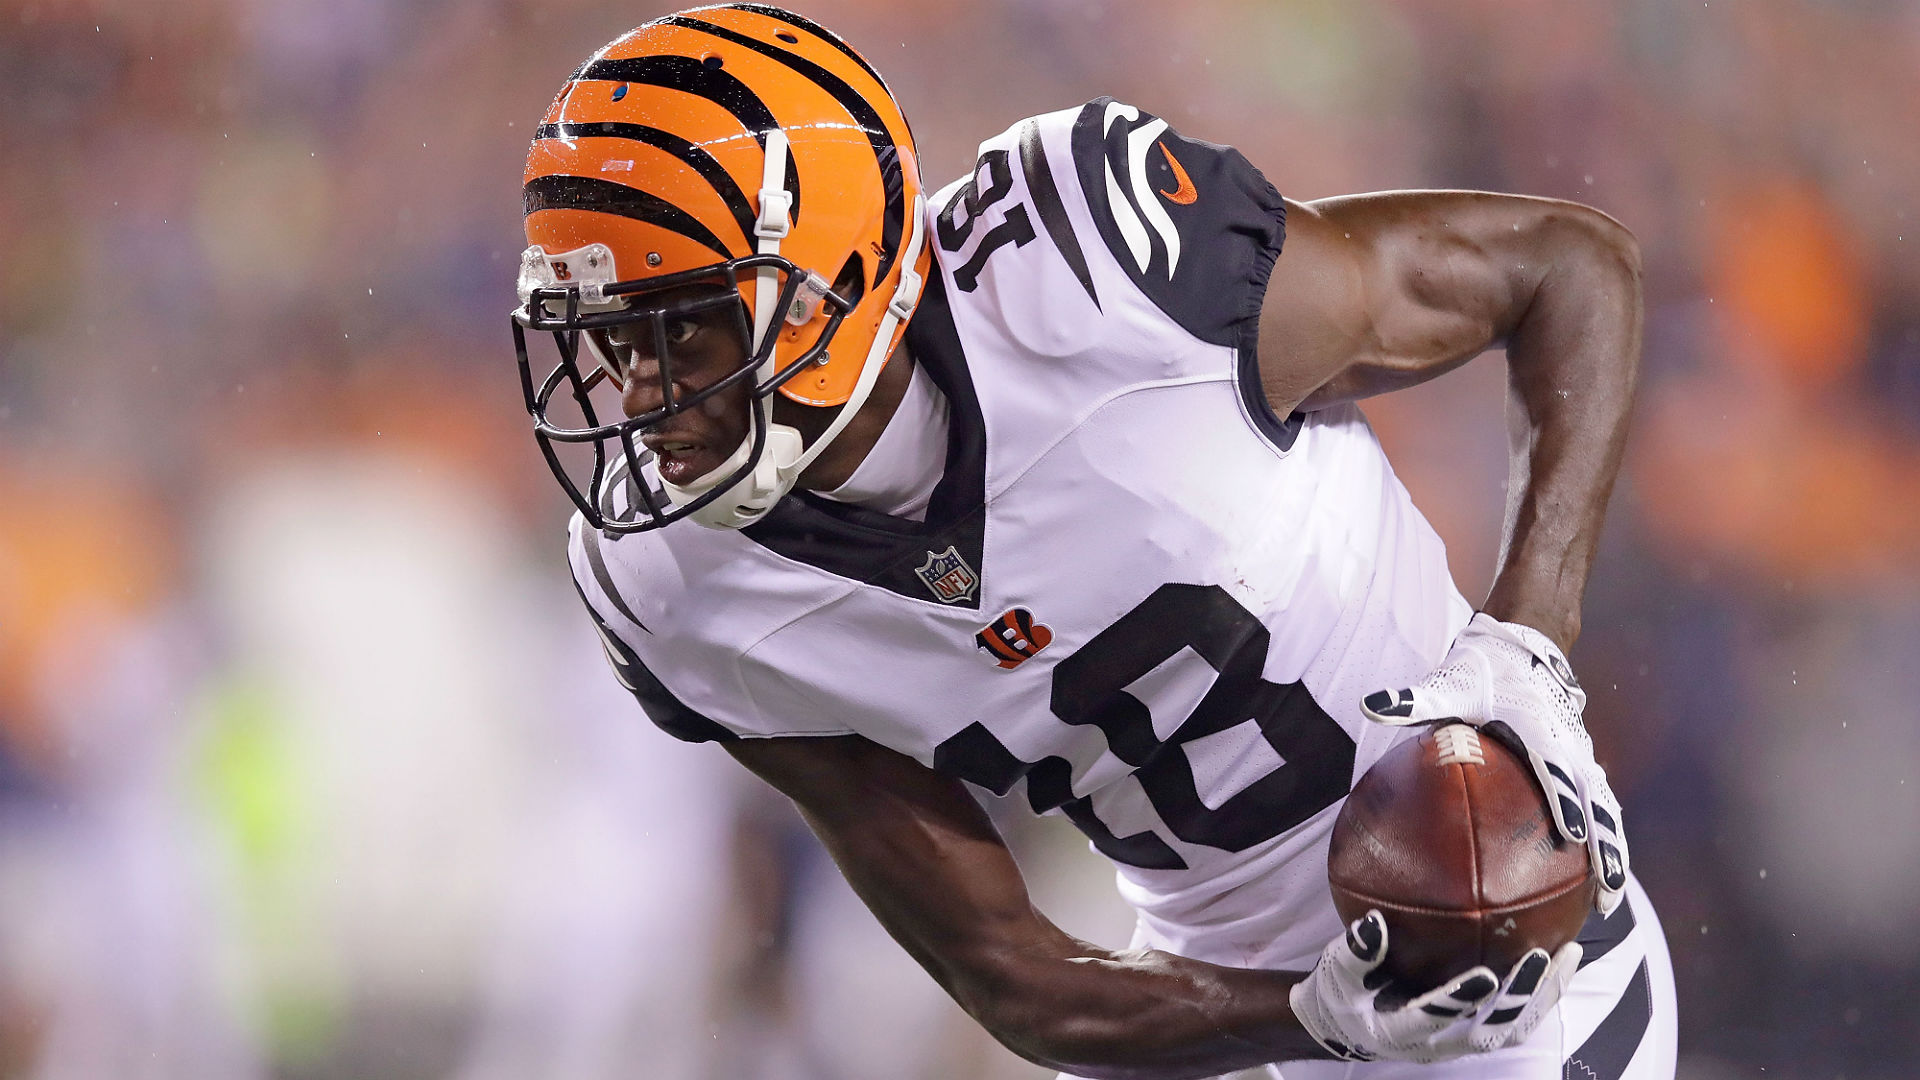 A.J. Green is focusing on returning to full fitness, not rumours linking him with a trade away from the Cincinnati Bengals.